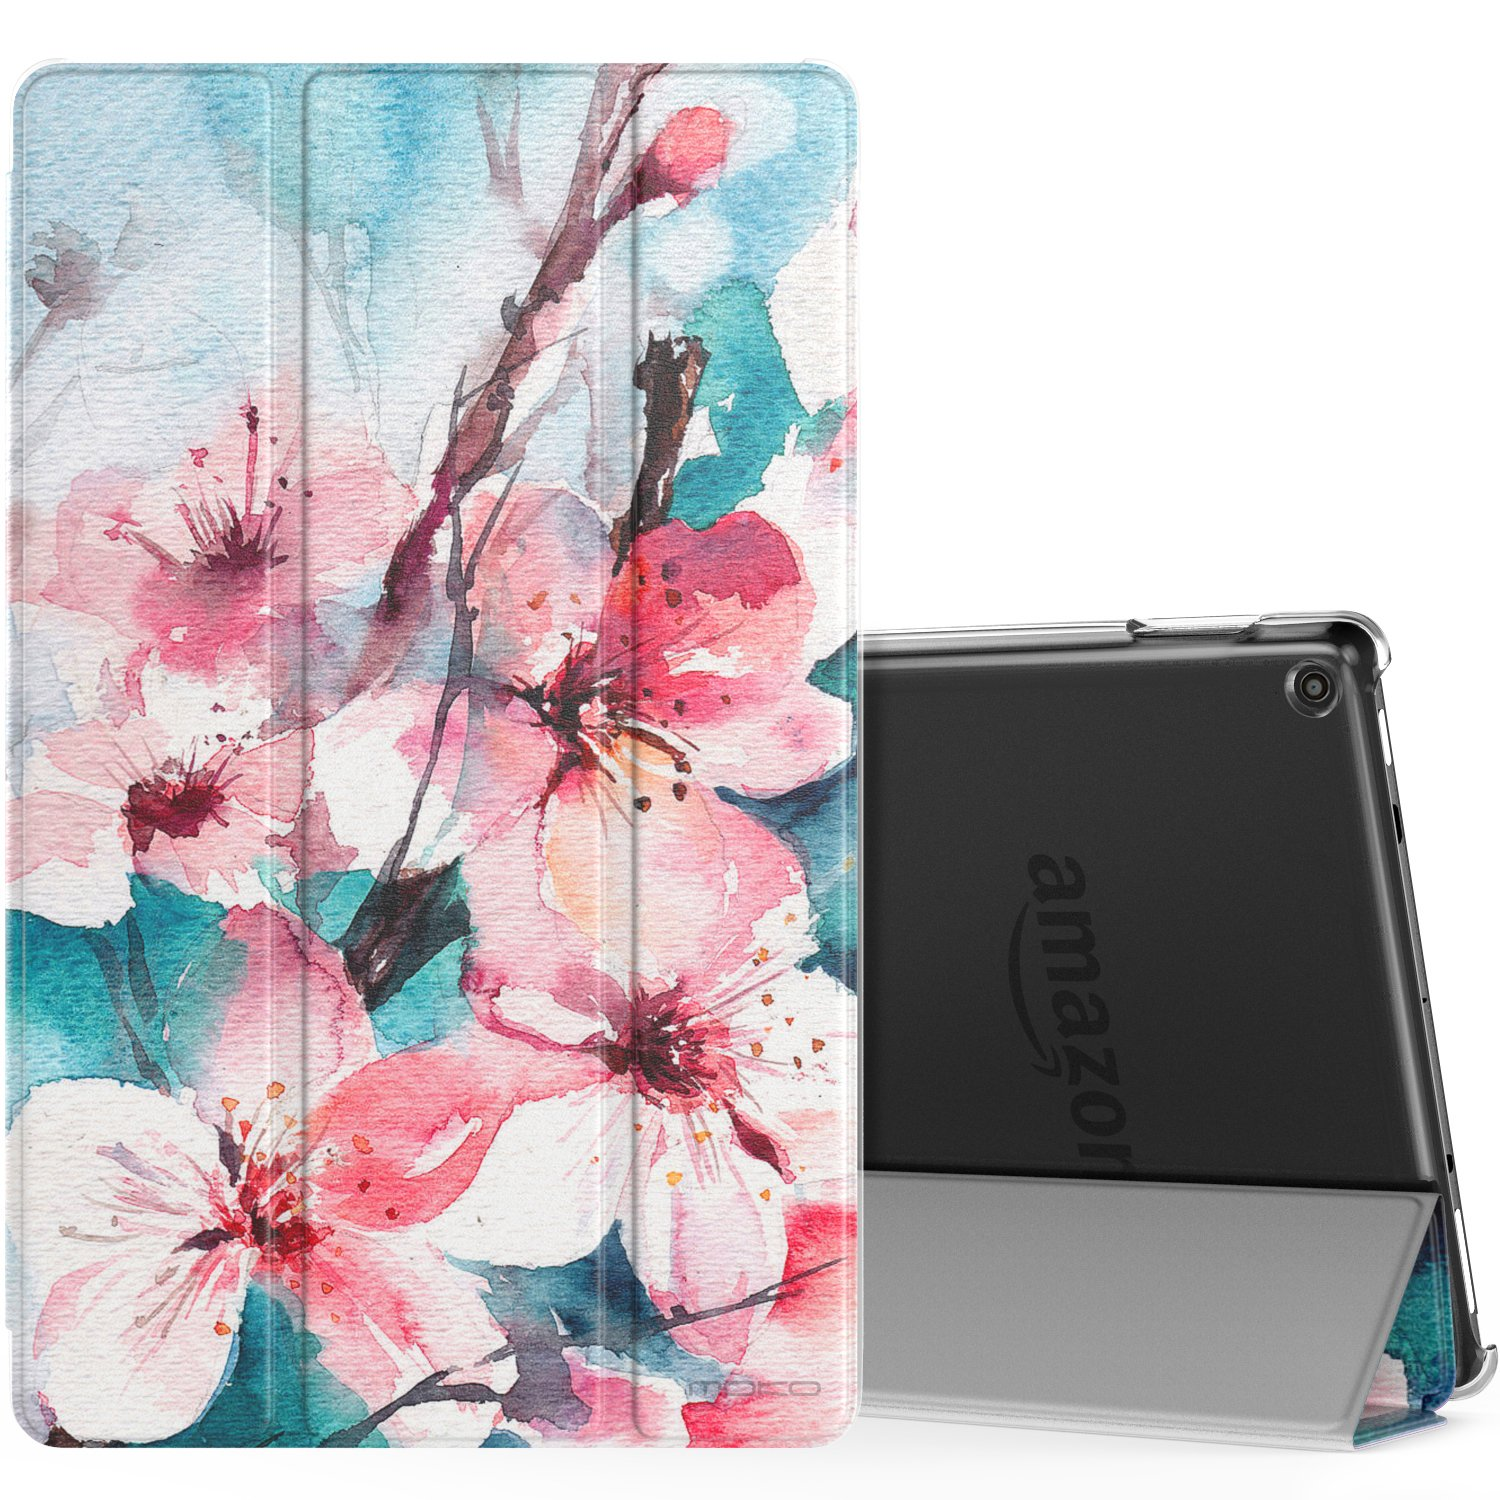 MoKo Case for All-New Amazon Fire HD 10 Tablet (7th Generation, 2017 Release) - Smart Shell Stand Cover with Auto Wake / Sleep & Translucent Frosted Back for Fire HD 10.1 Inch Tablet, Peach Blossom